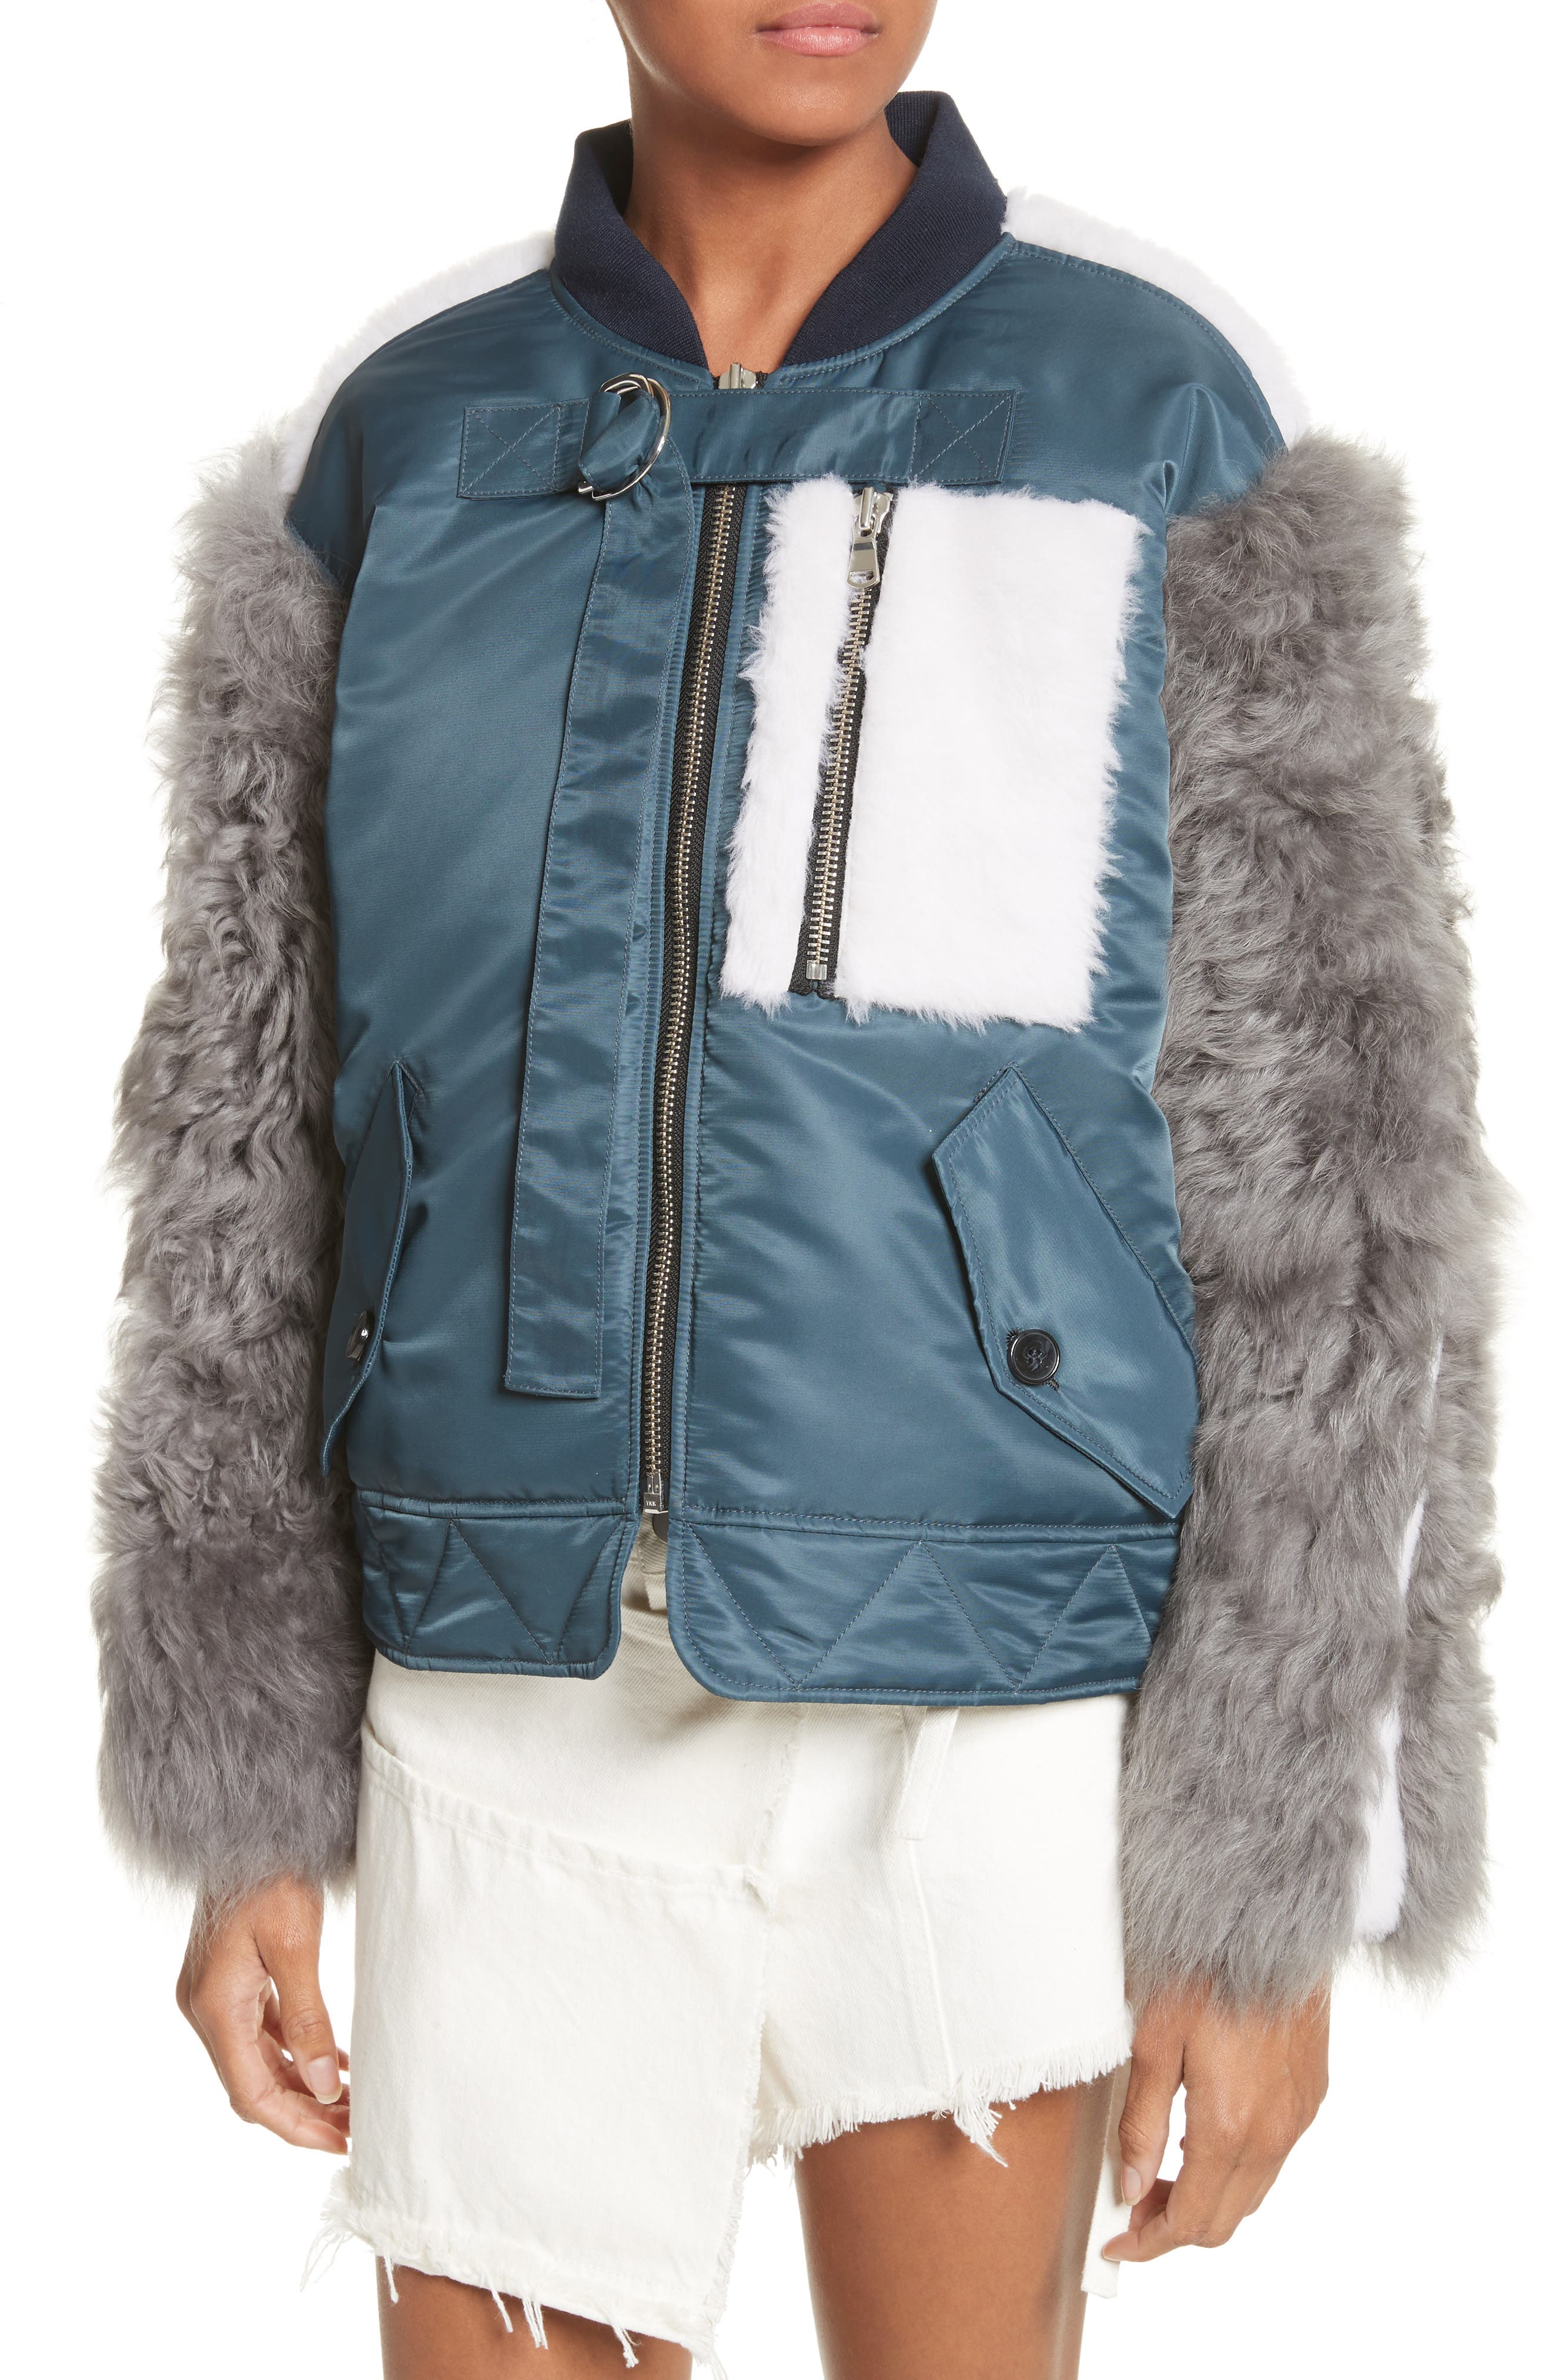 Peter Genuine Shearling Sleeve Jacket,                             Alternate thumbnail 4, color,                             Navy